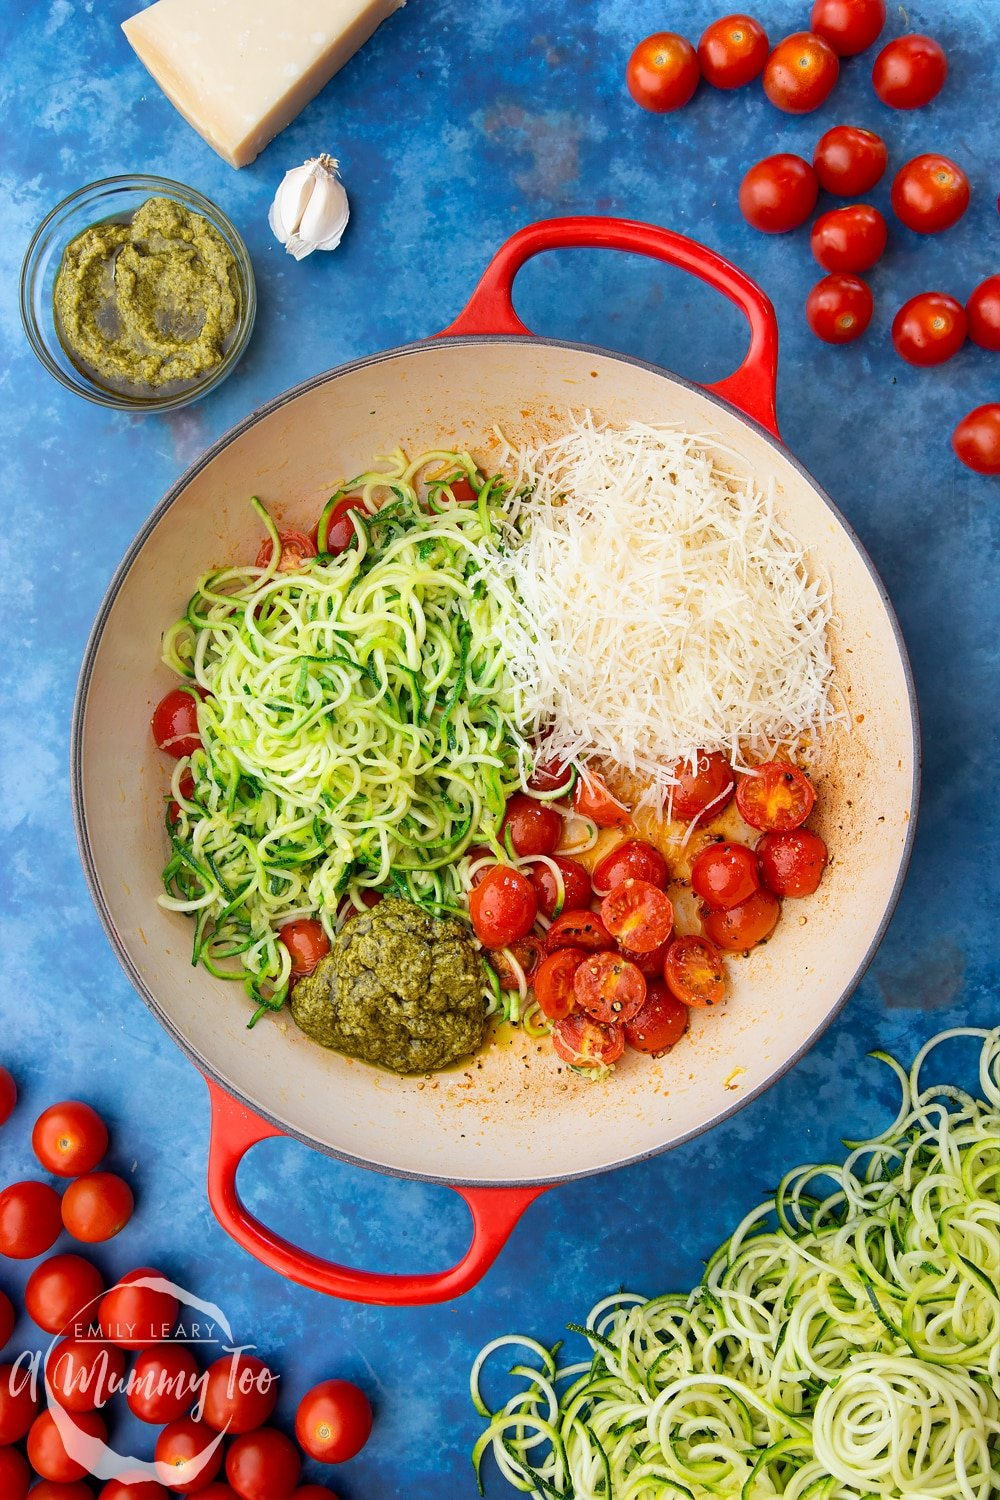 Cherry tomatoes, pesto, grated parmesan, garlic, olive oil, black pepper and spiralised courgette in a frying pan